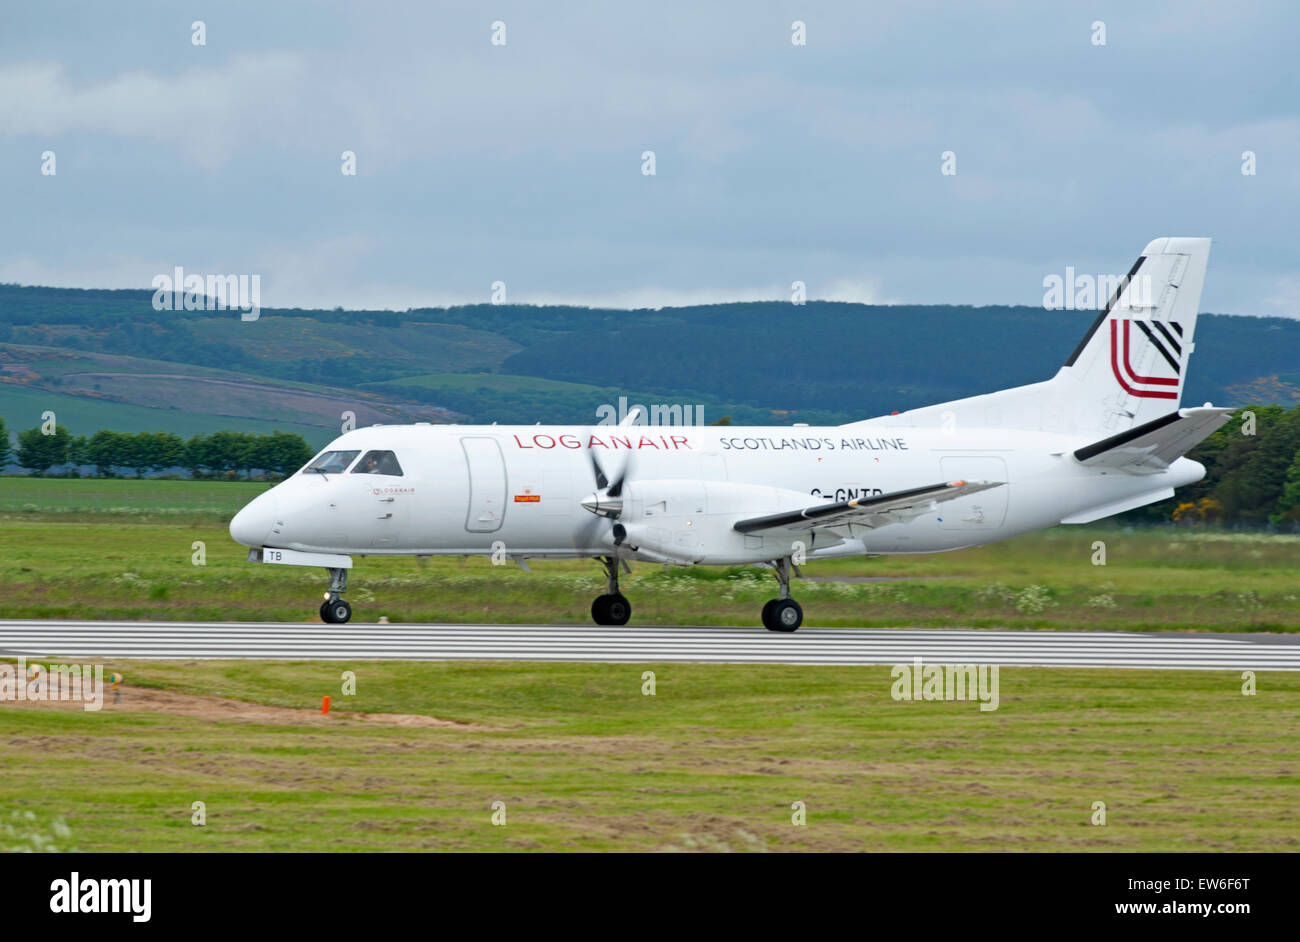 Loganair Saab 340A Scotland's Airline at Inverness Dalcross Airport.  SCO 9891. - Stock Image